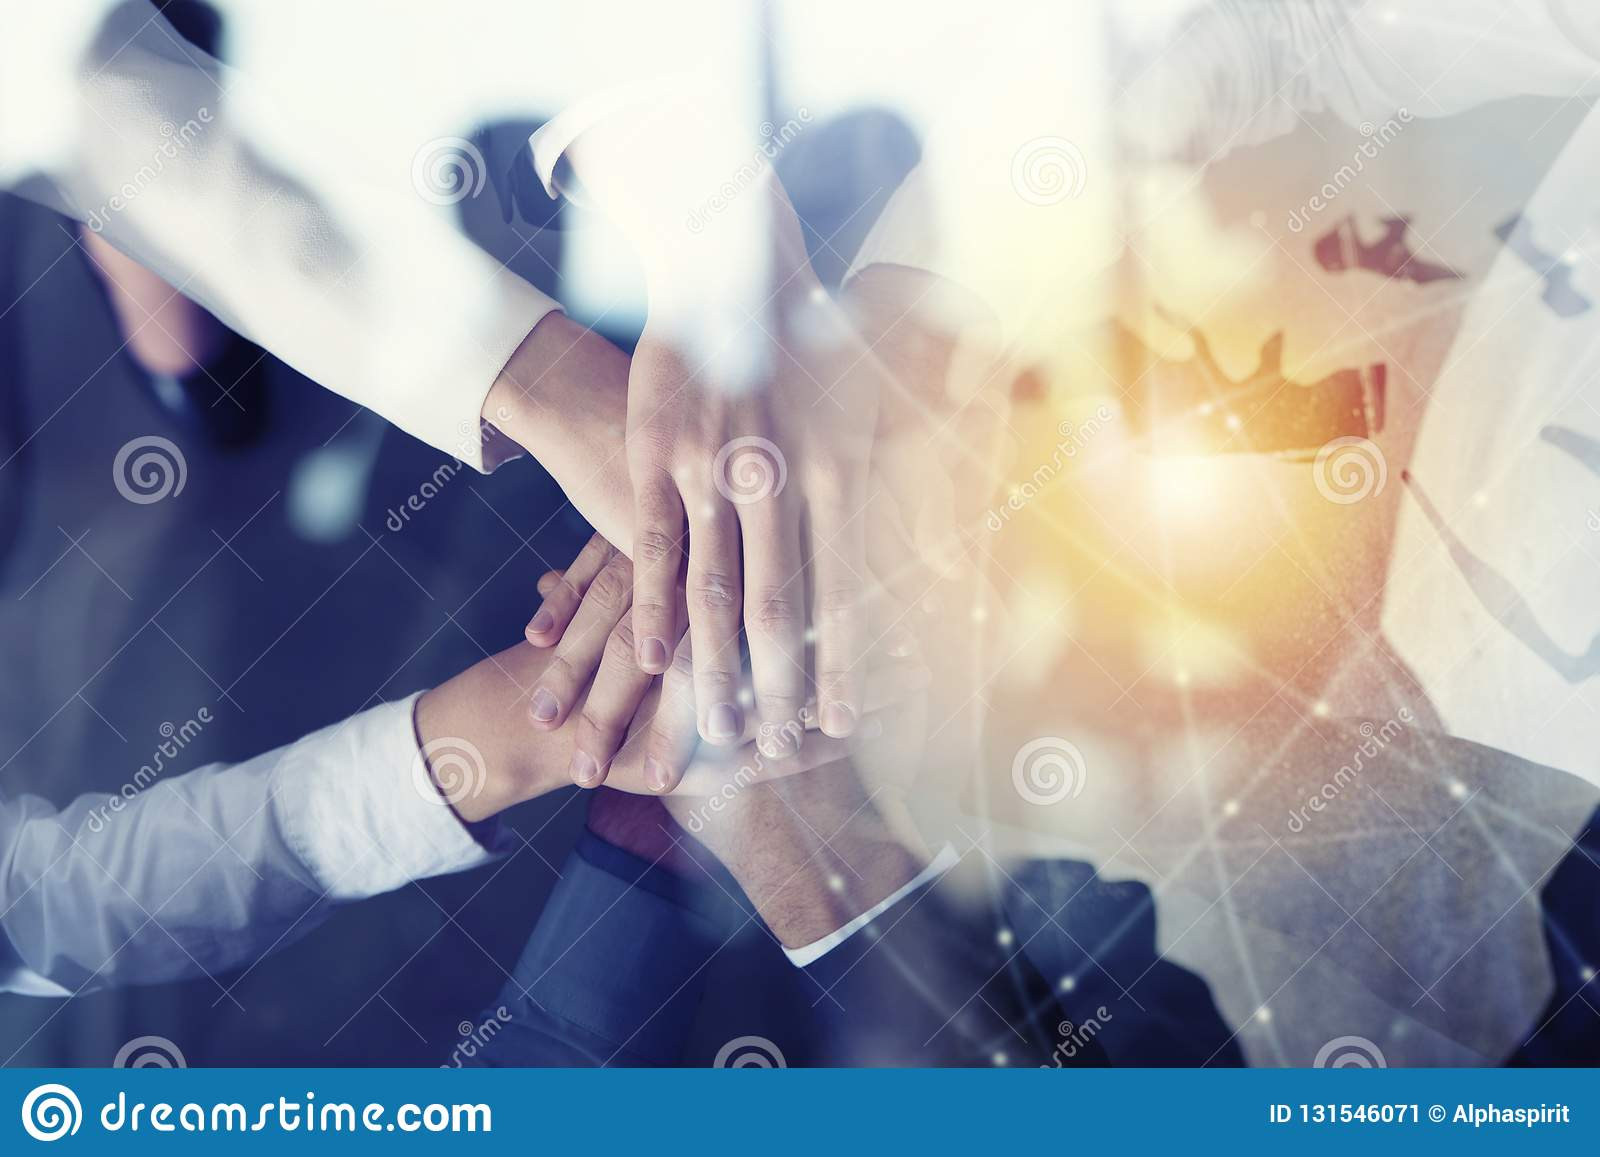 Business people putting their hands together. Concept of startup, integration, teamwork and partnership. Double exposure